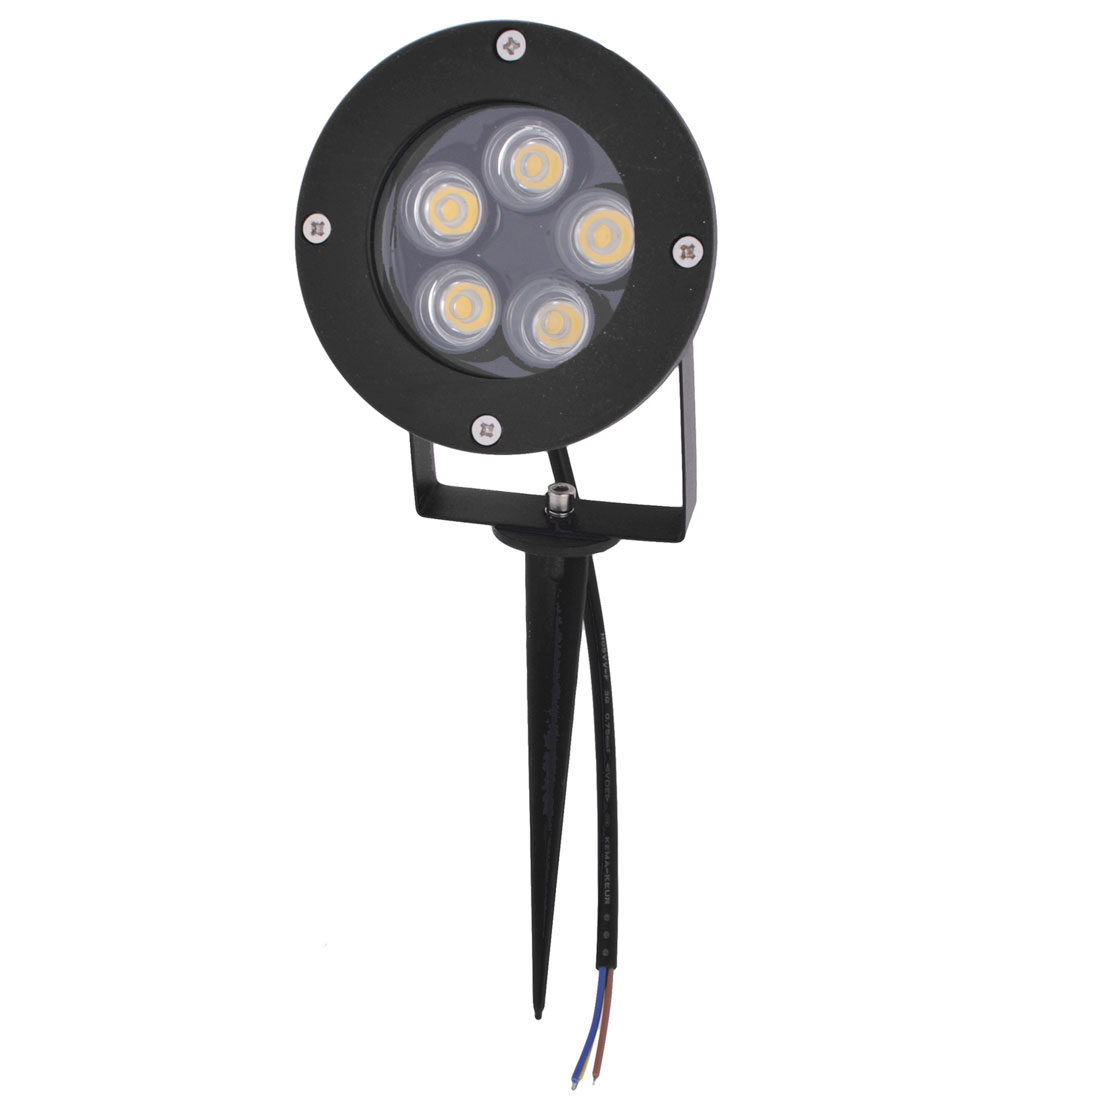 AC85-265V 10W 5-LEDs 500-550LM Warm White LED Light Garden Spotlight Lamp